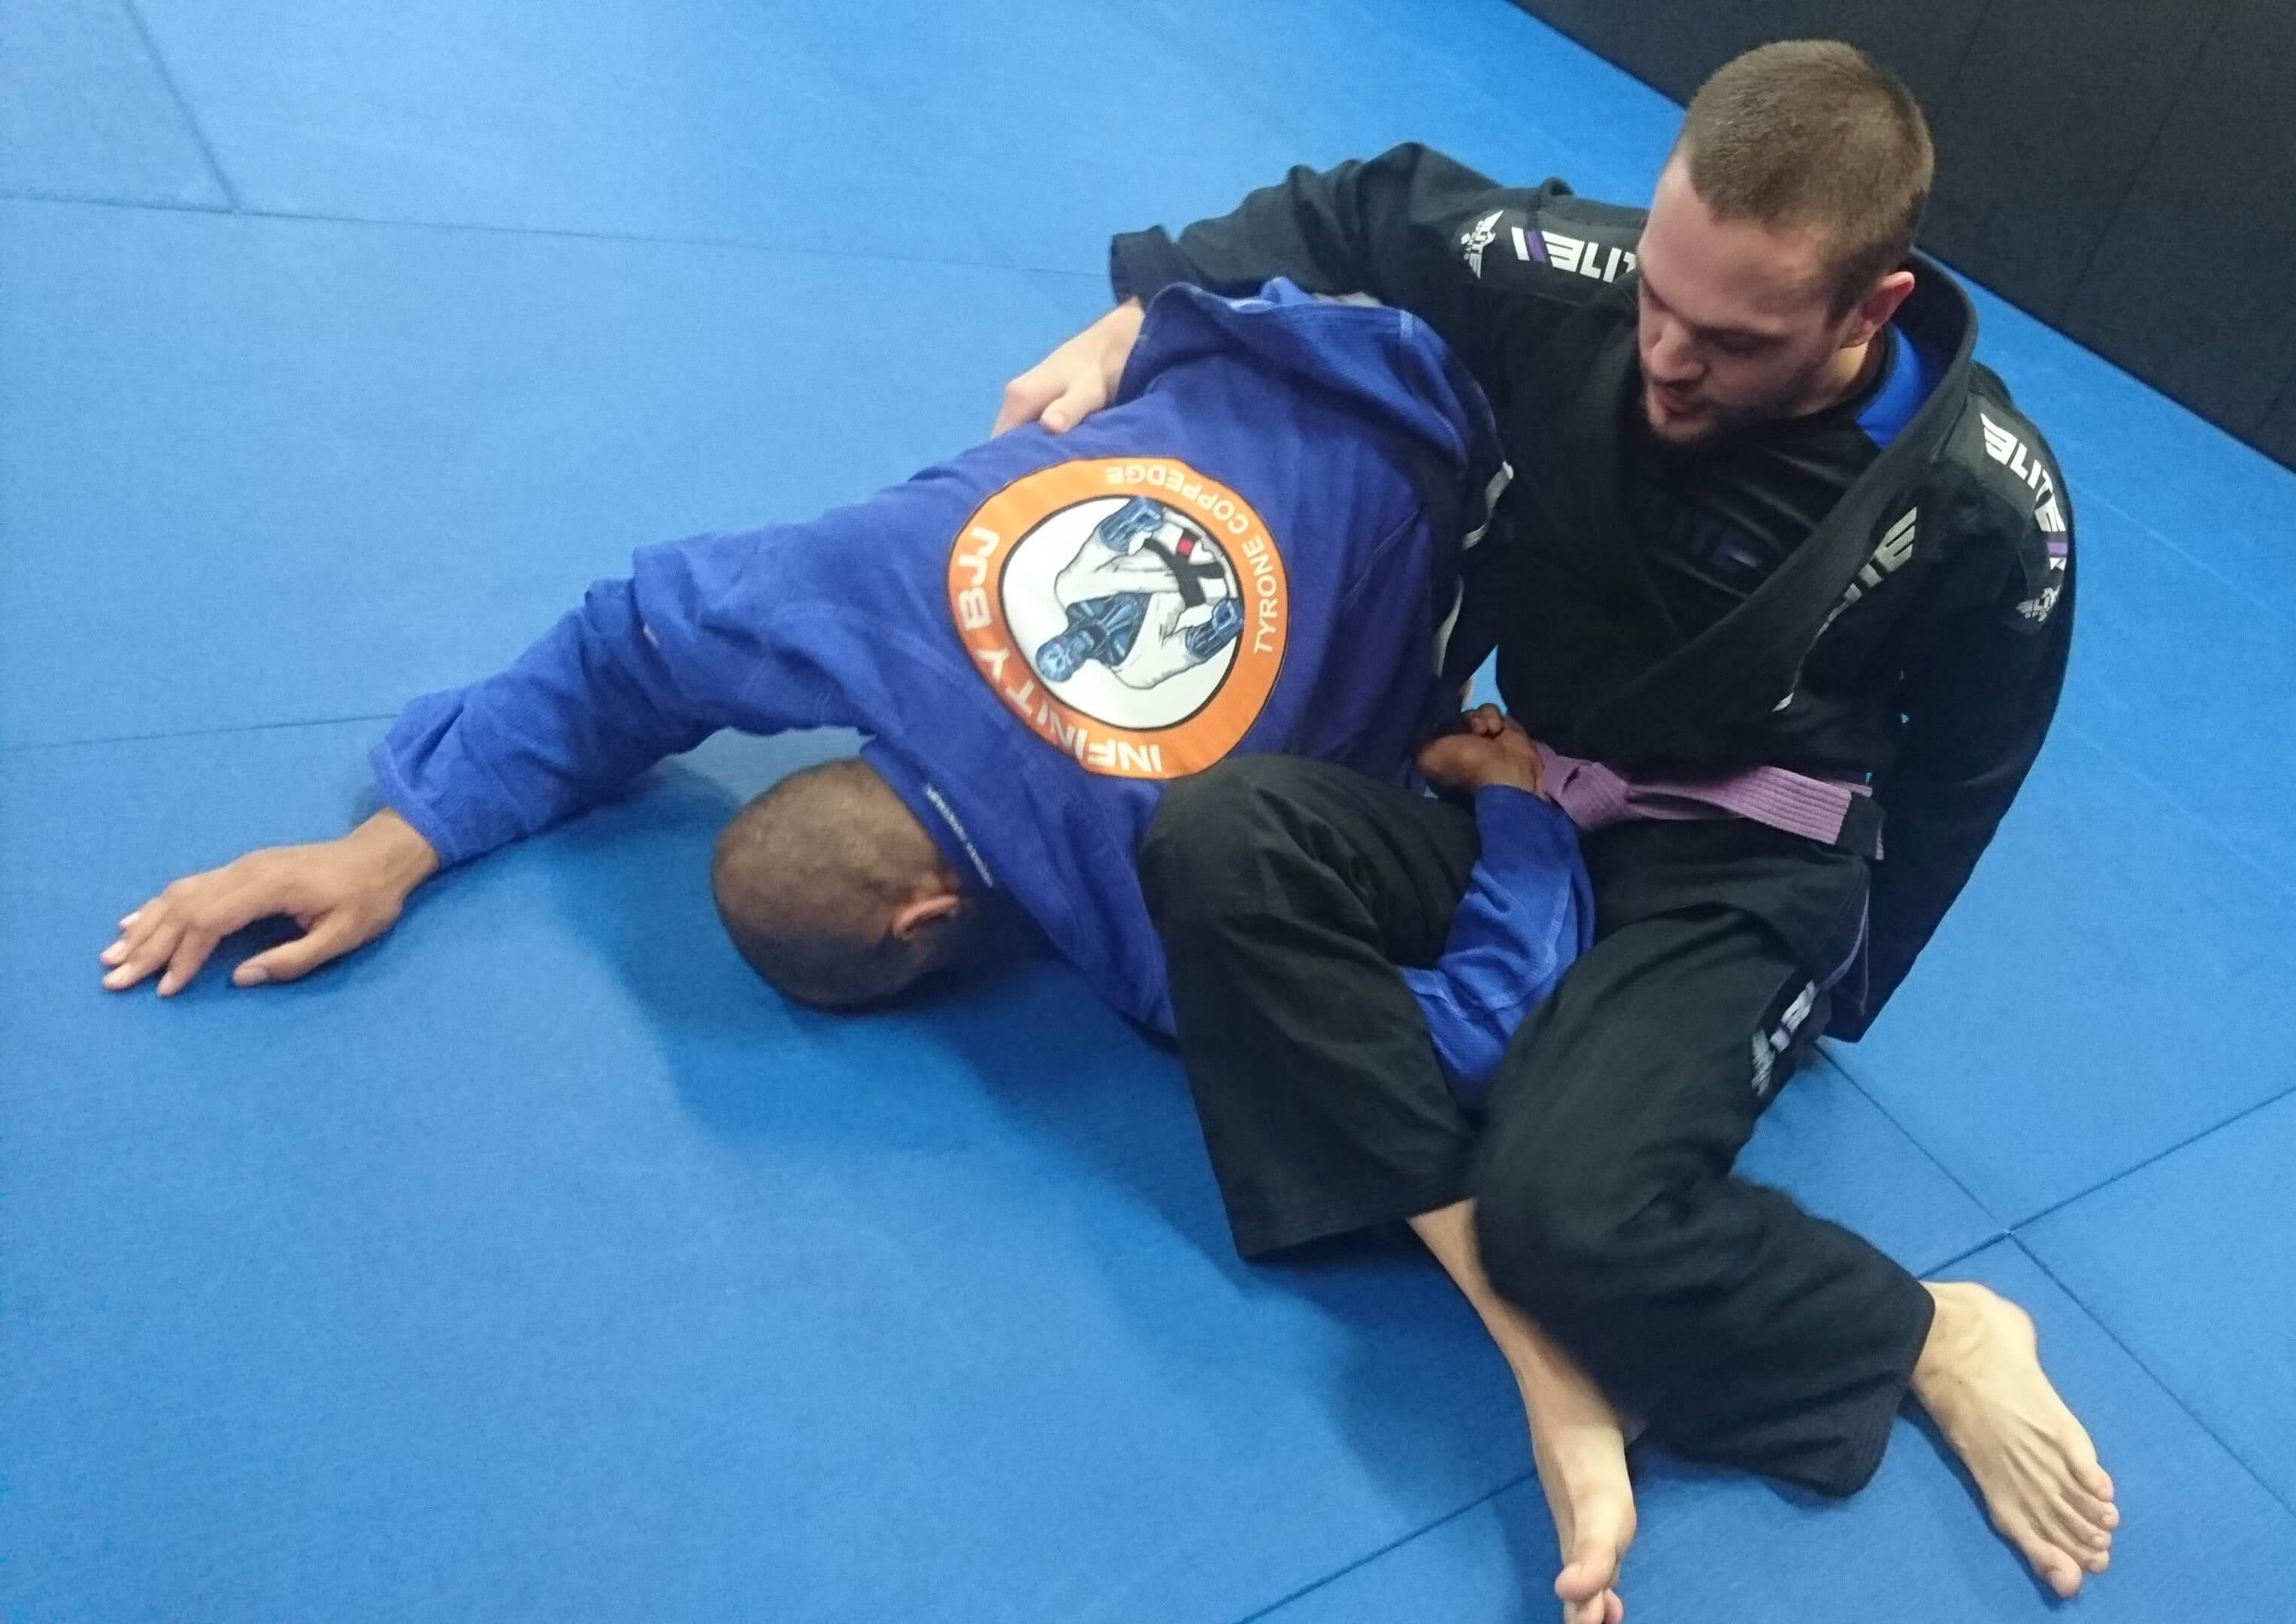 Elite sports Team Elite BJJ Shaun Steven Harrison image6.jpg